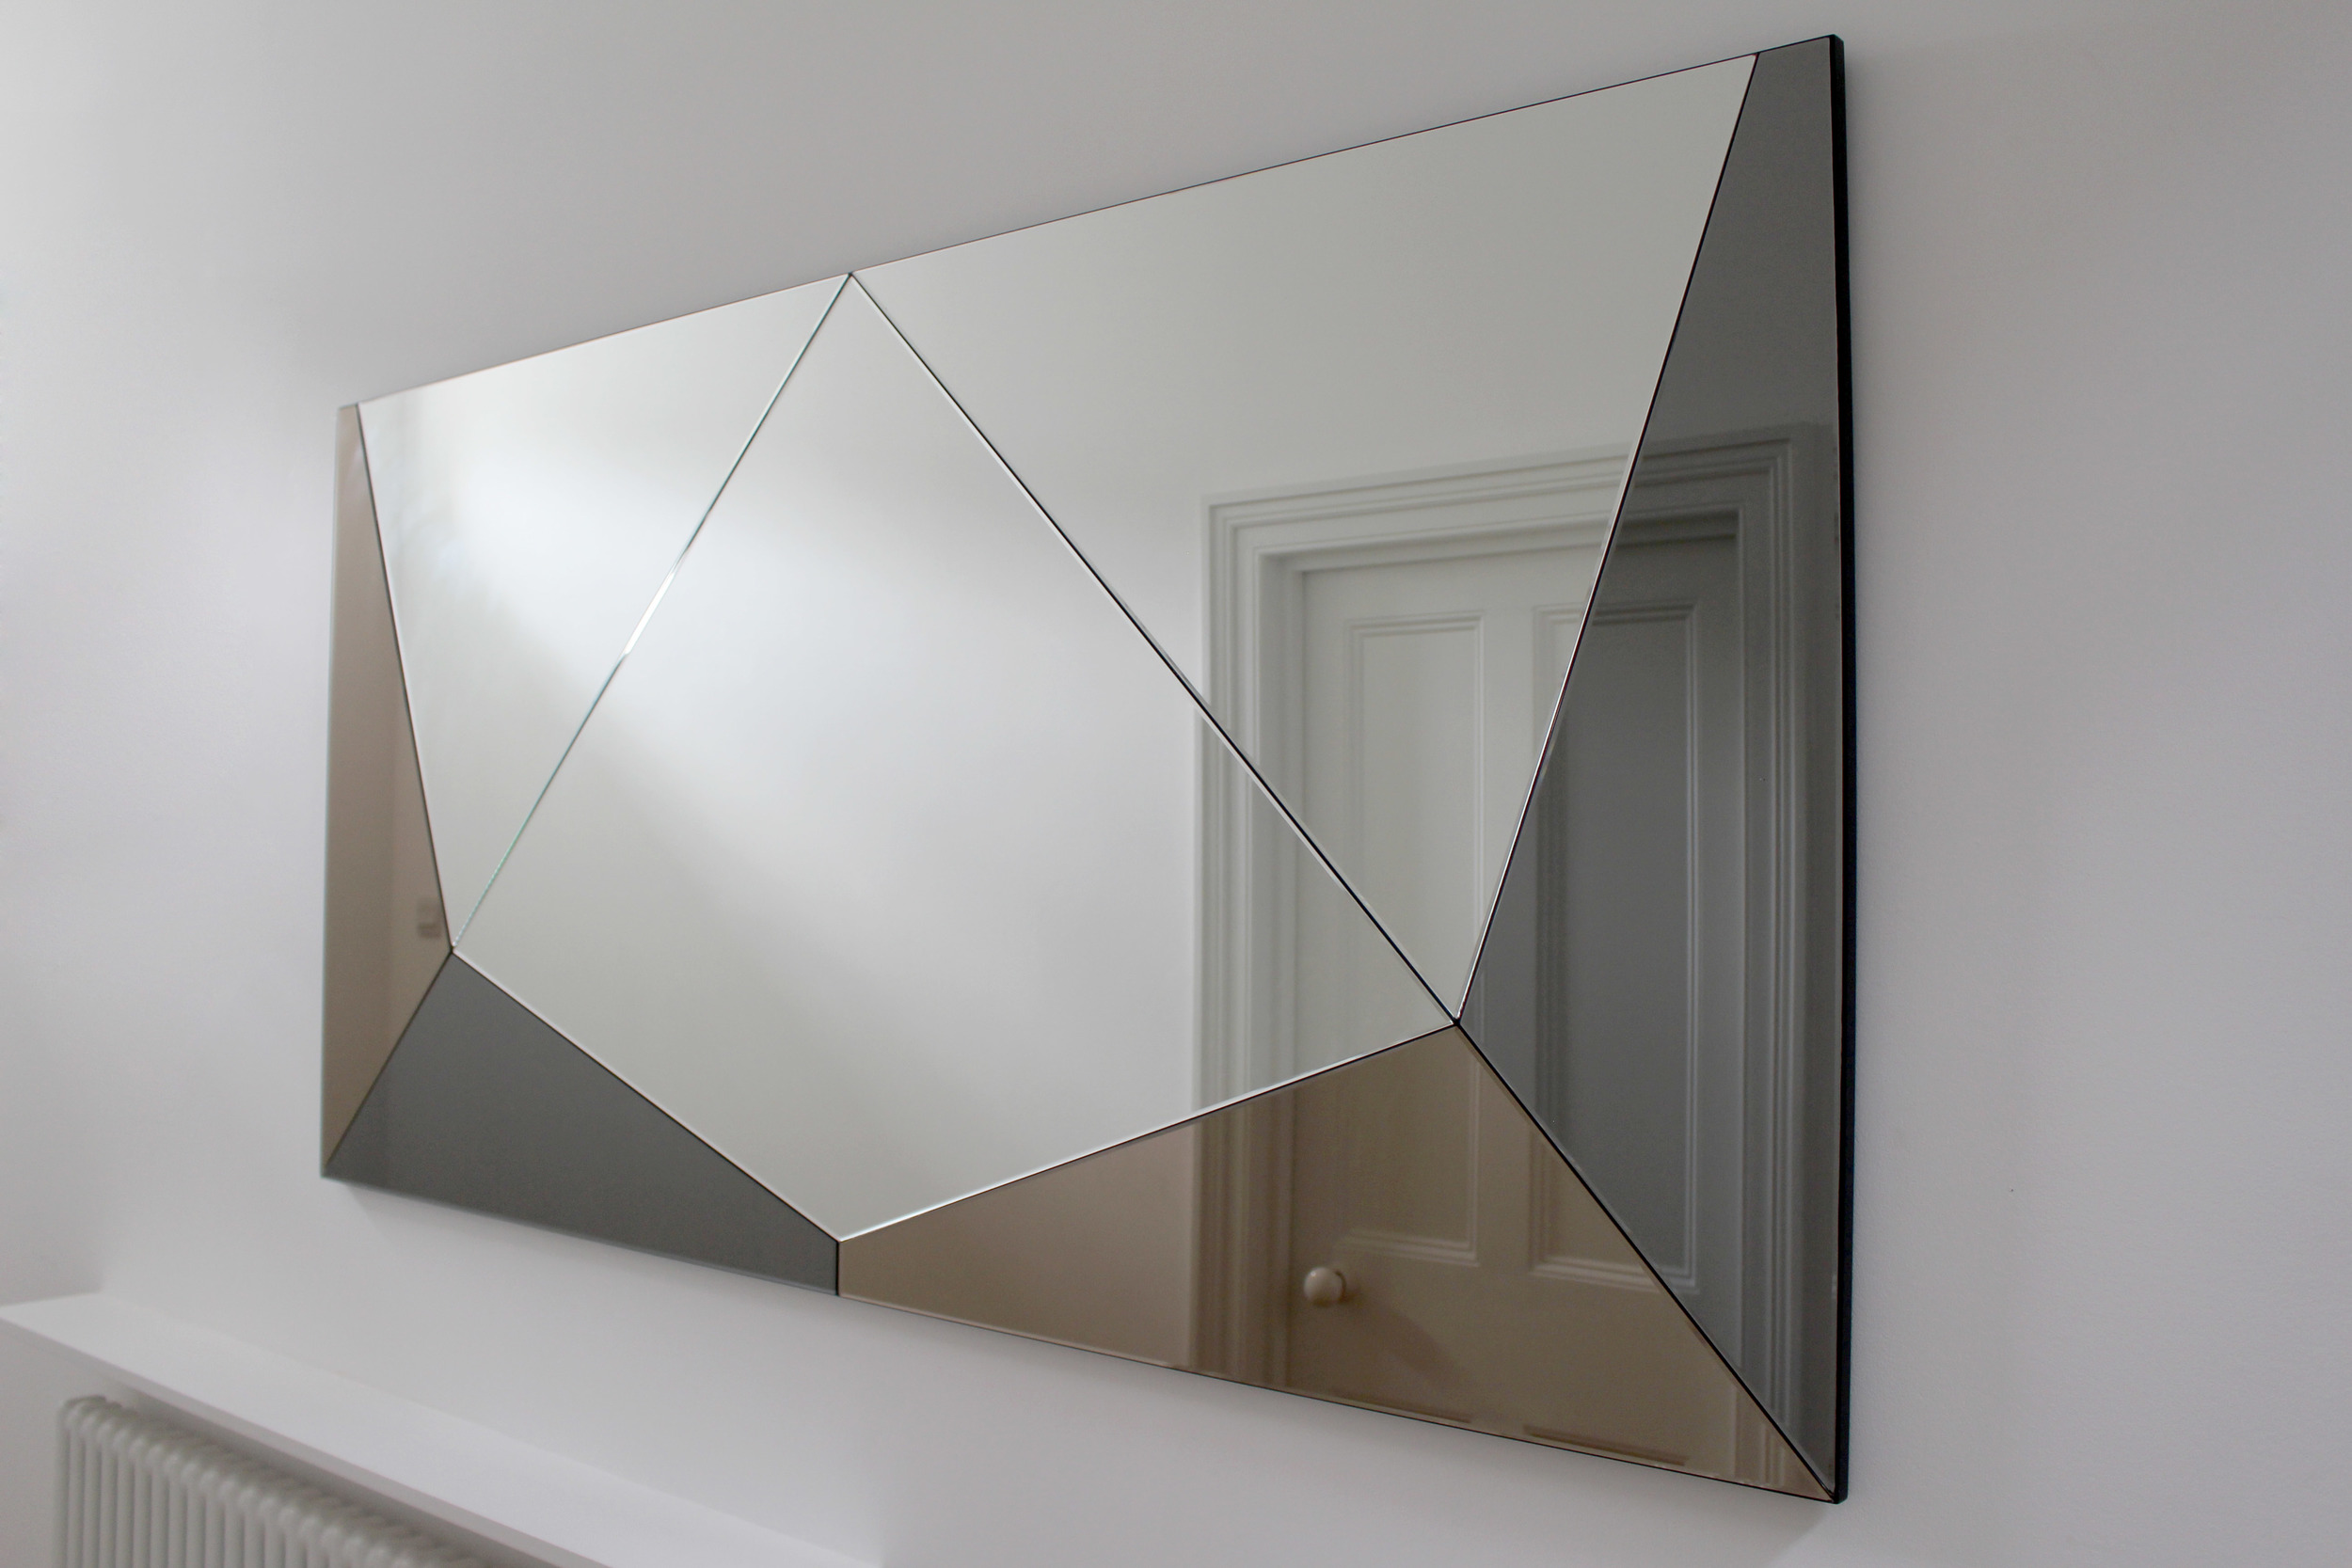 coloured geometric mirror commission reflection haidee drew.jpg